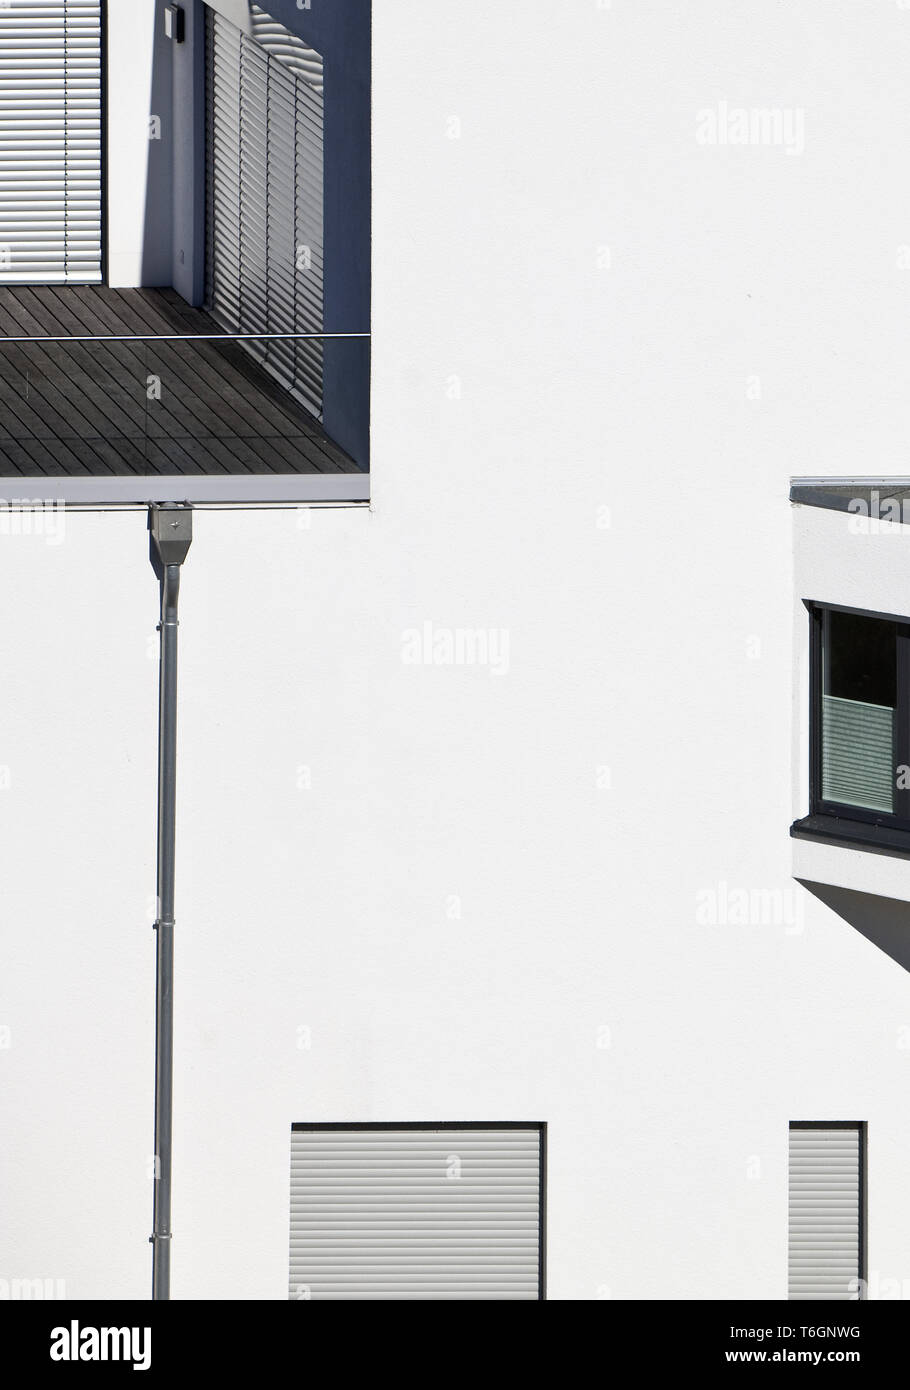 details of modern architecture at the Phoenix lake, Dortmund, Ruhr Area, Germany, Europe - Stock Image